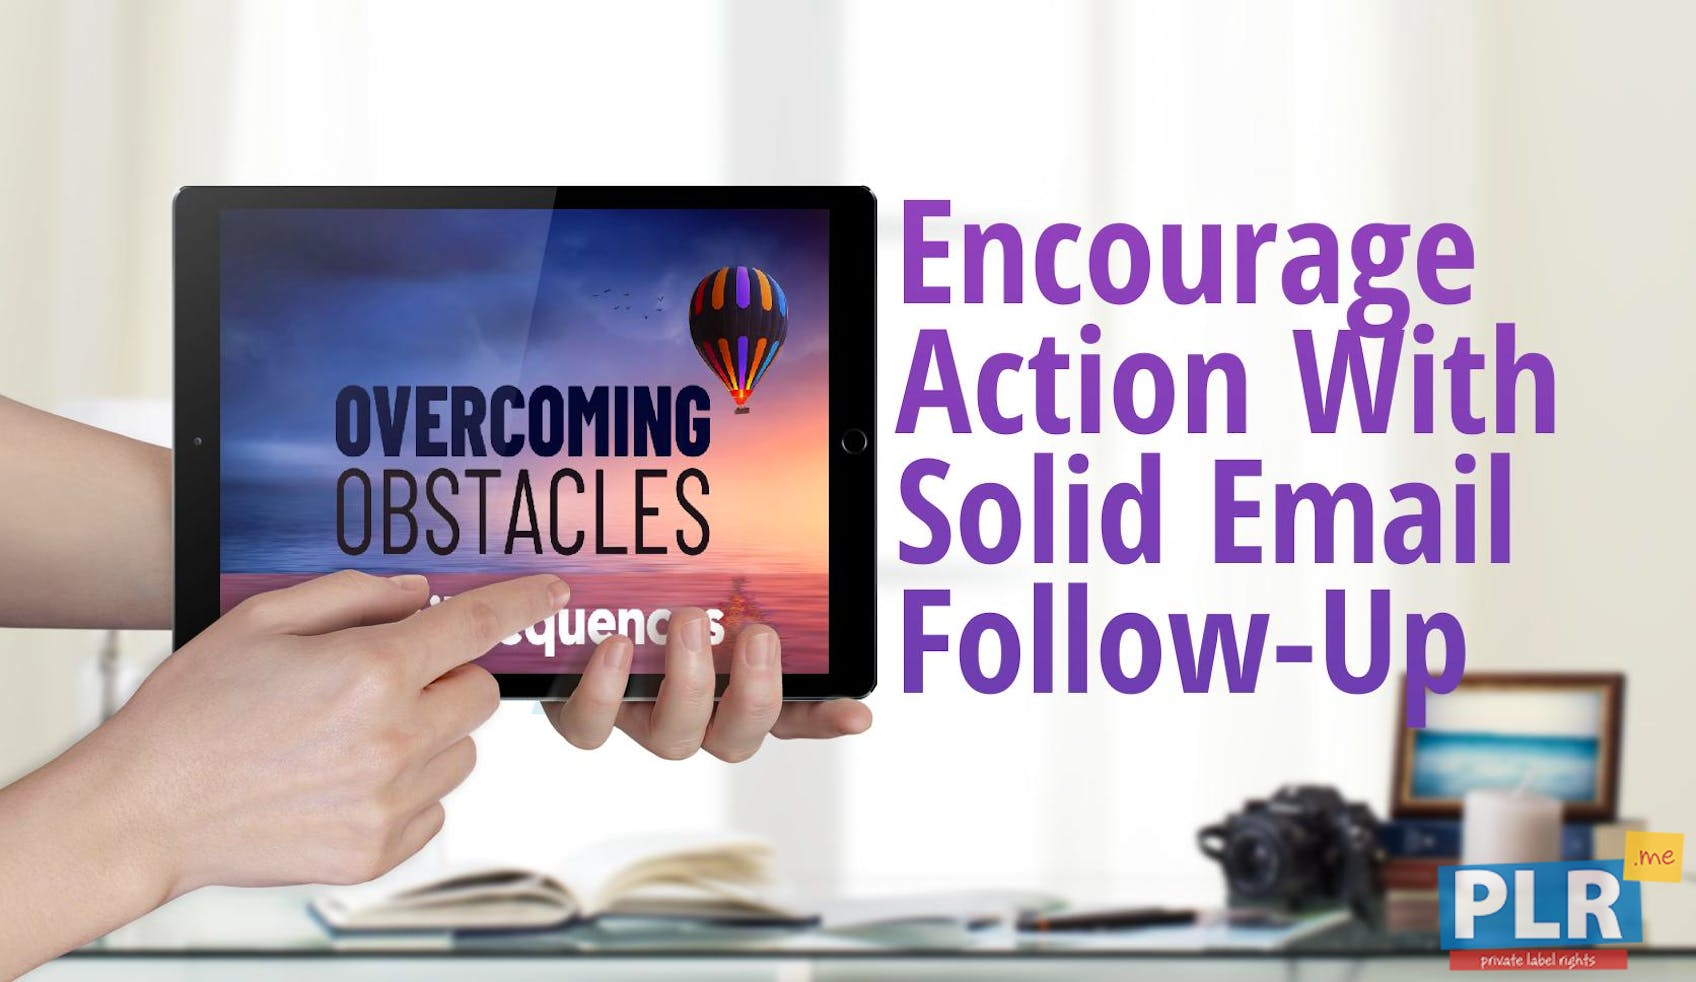 Overcoming Obstacles: Build Grit, Resilience And Mental Toughness - Email Sequence